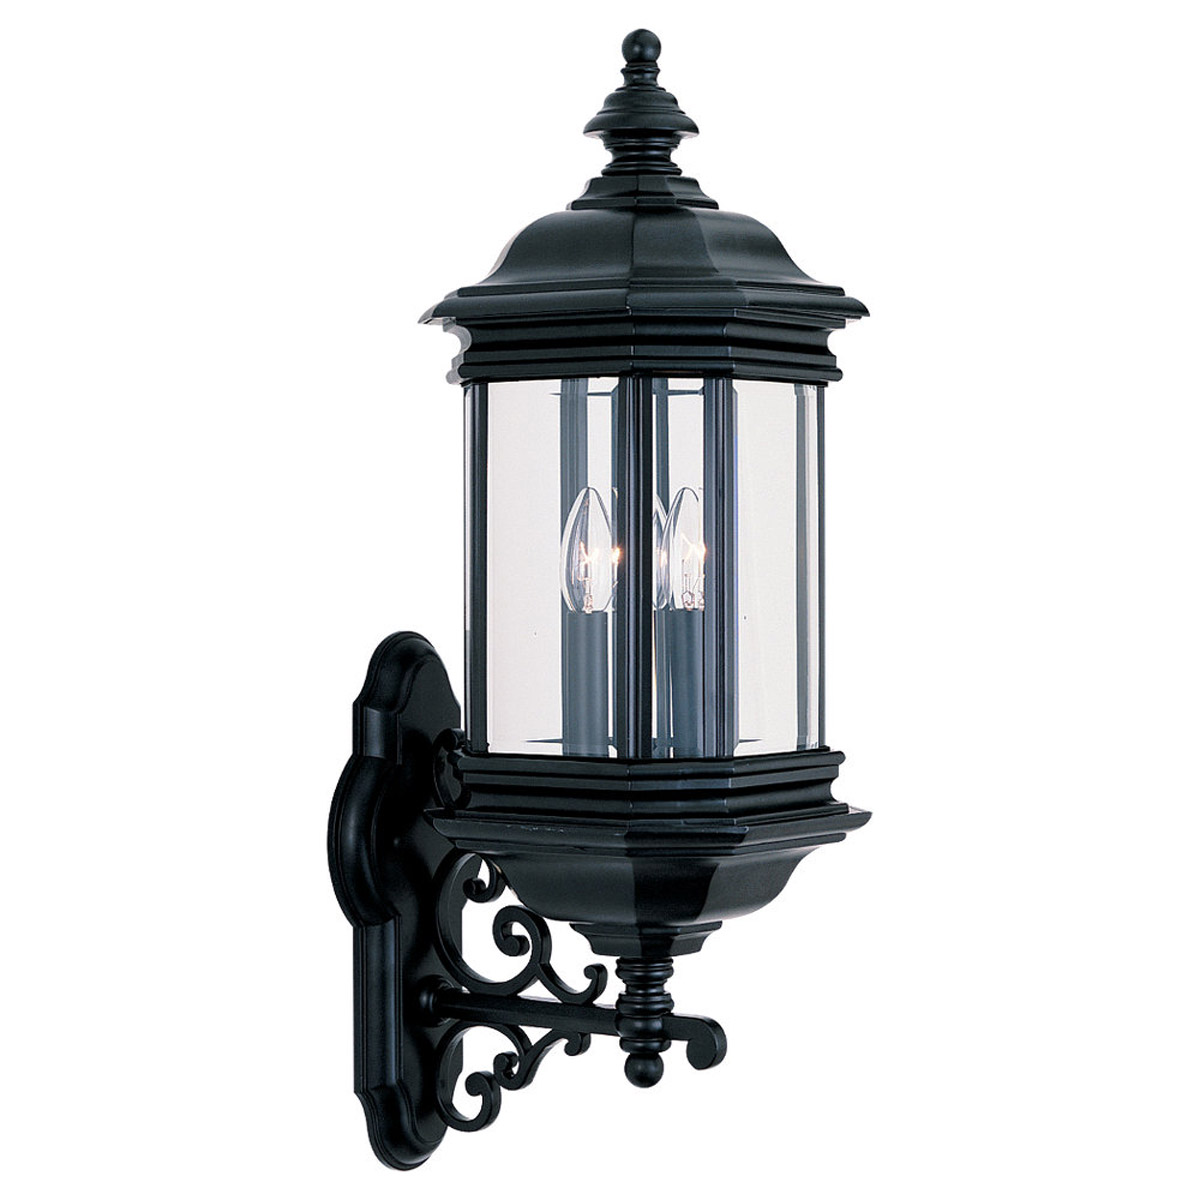 Sea Gull Lighting Hill Gate 3 Light Outdoor Wall Lantern in Black 8839-12